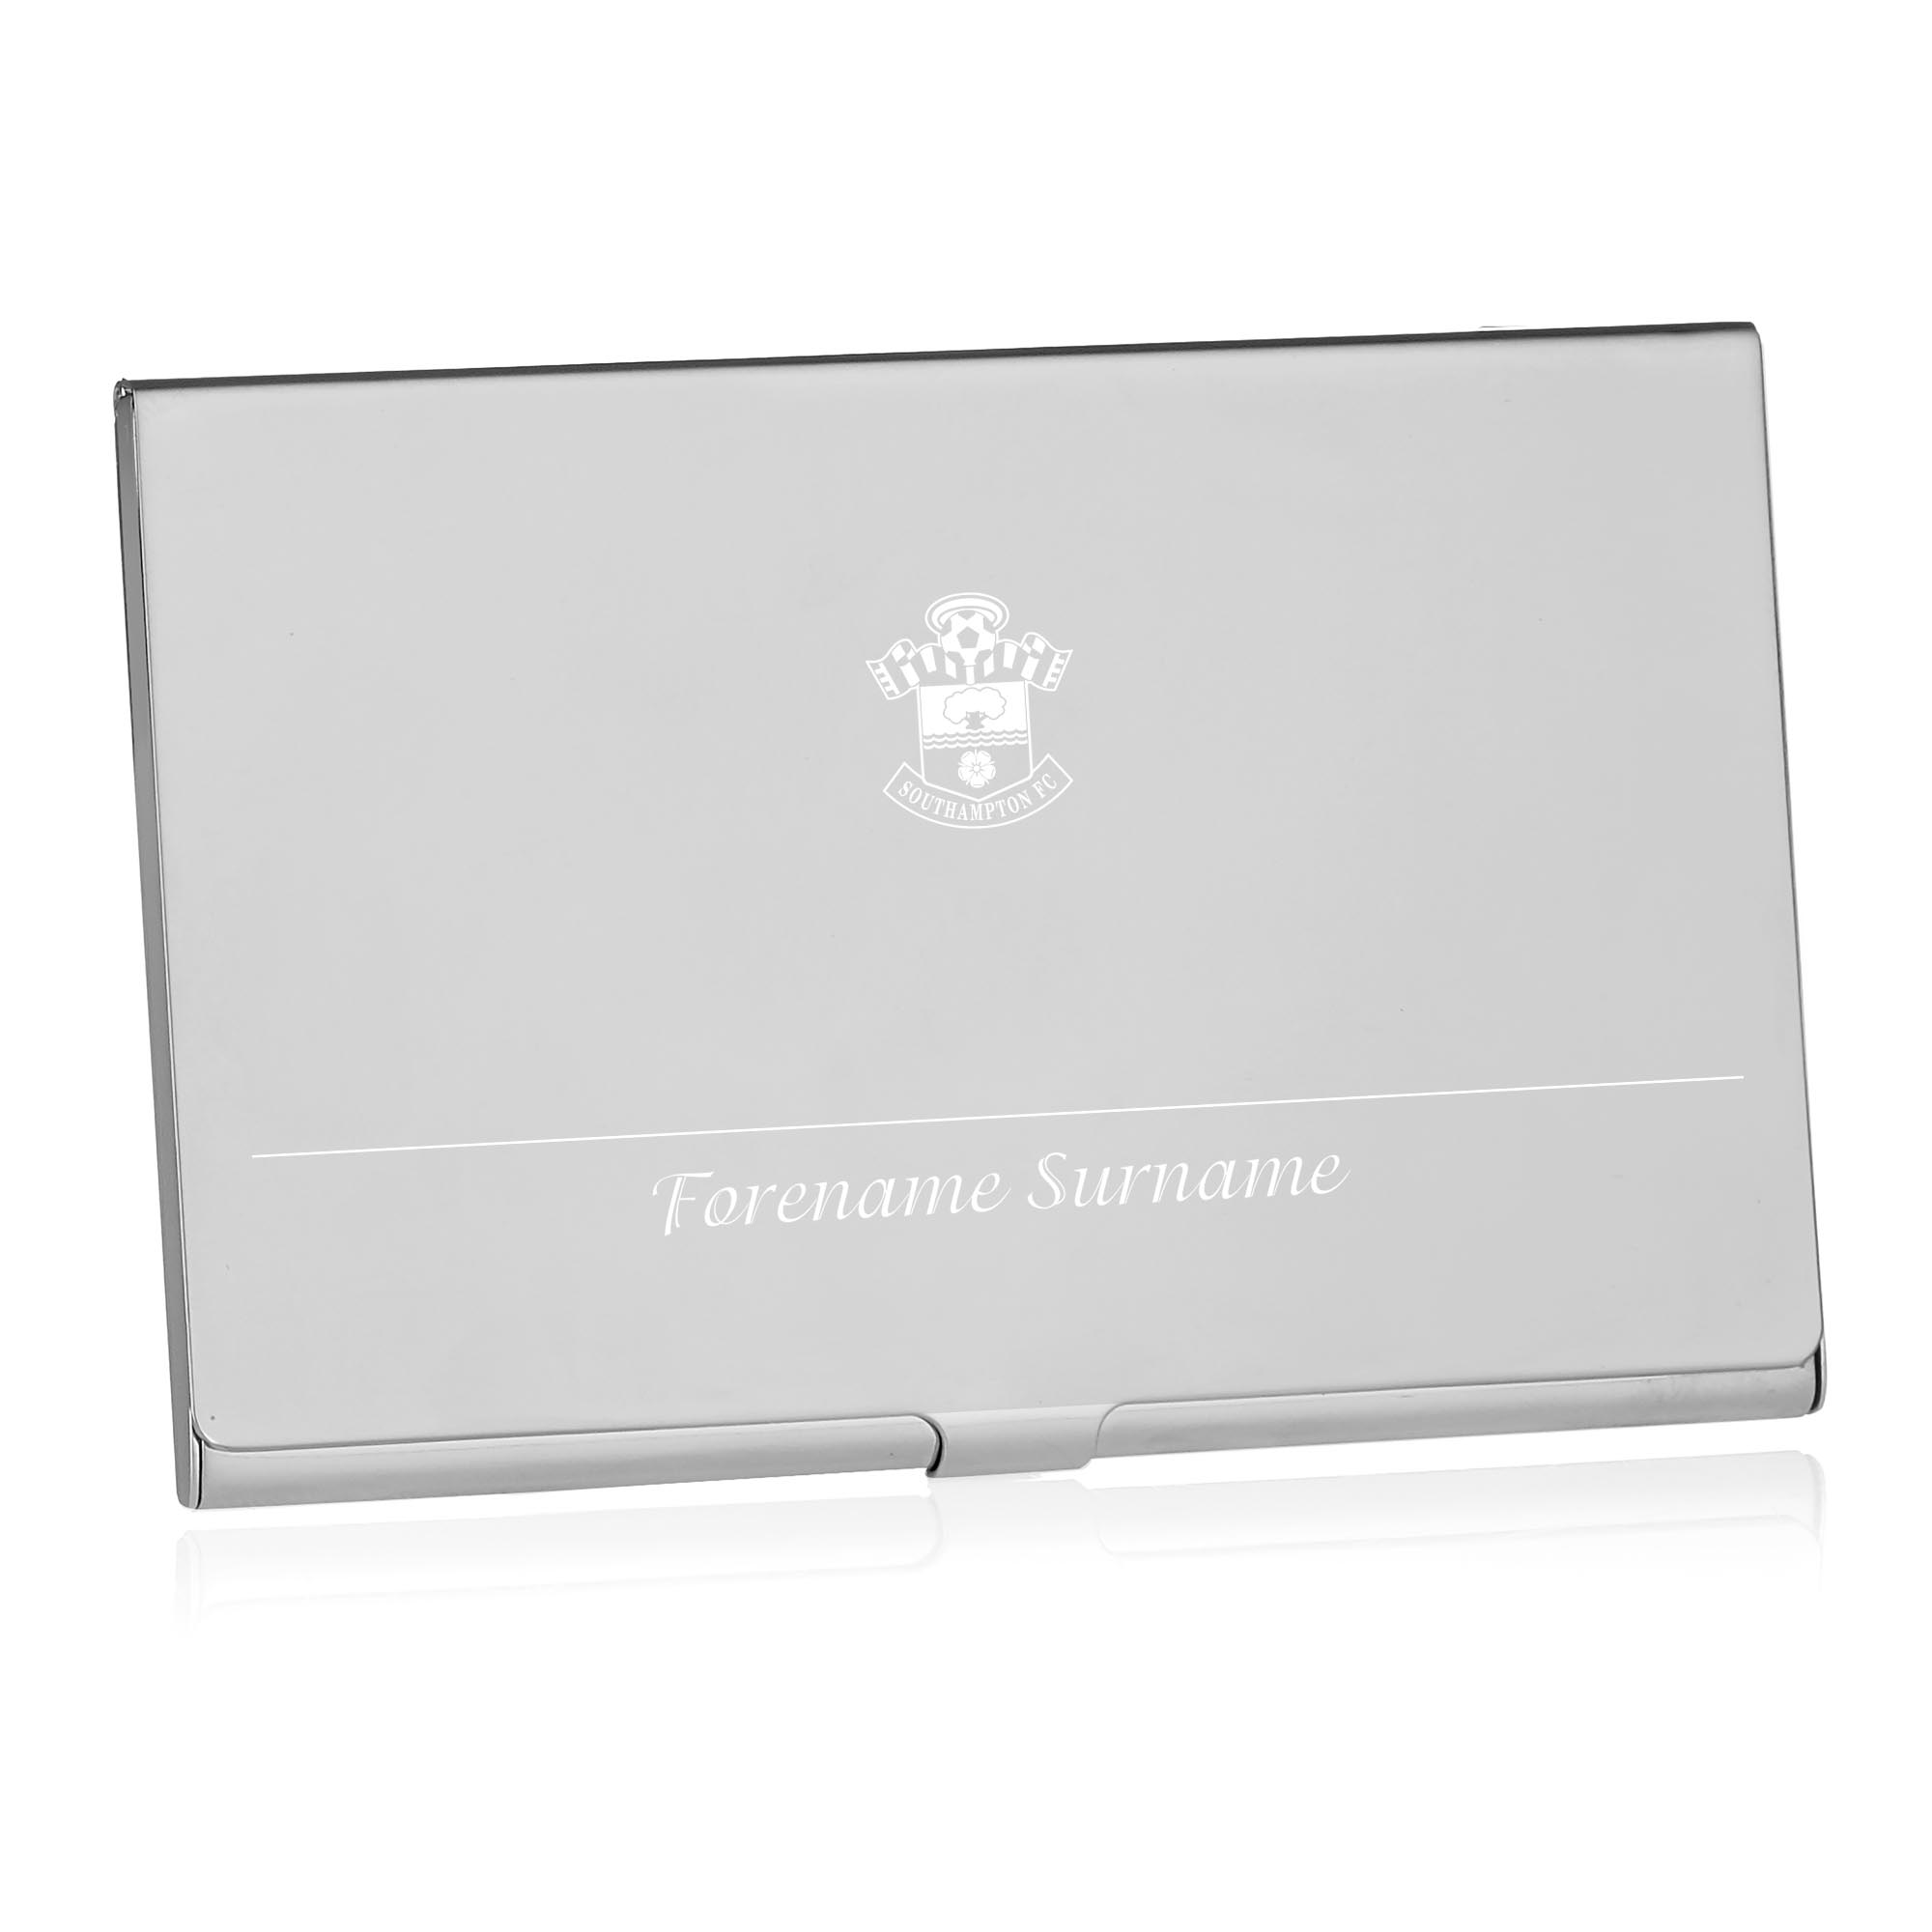 Southampton FC Executive Business Card Holder